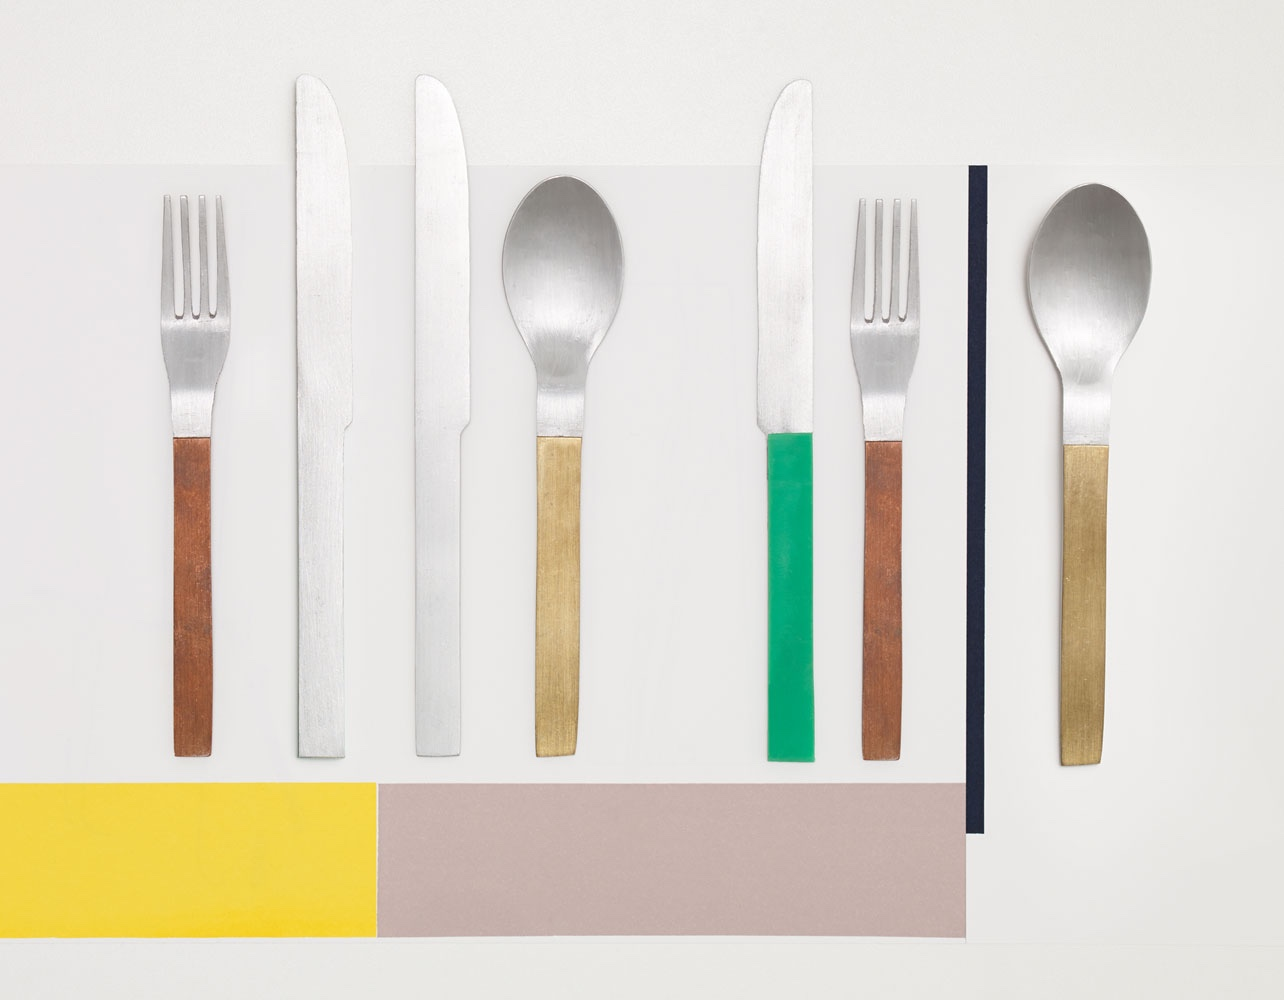 Cutlery for valerie_objects.